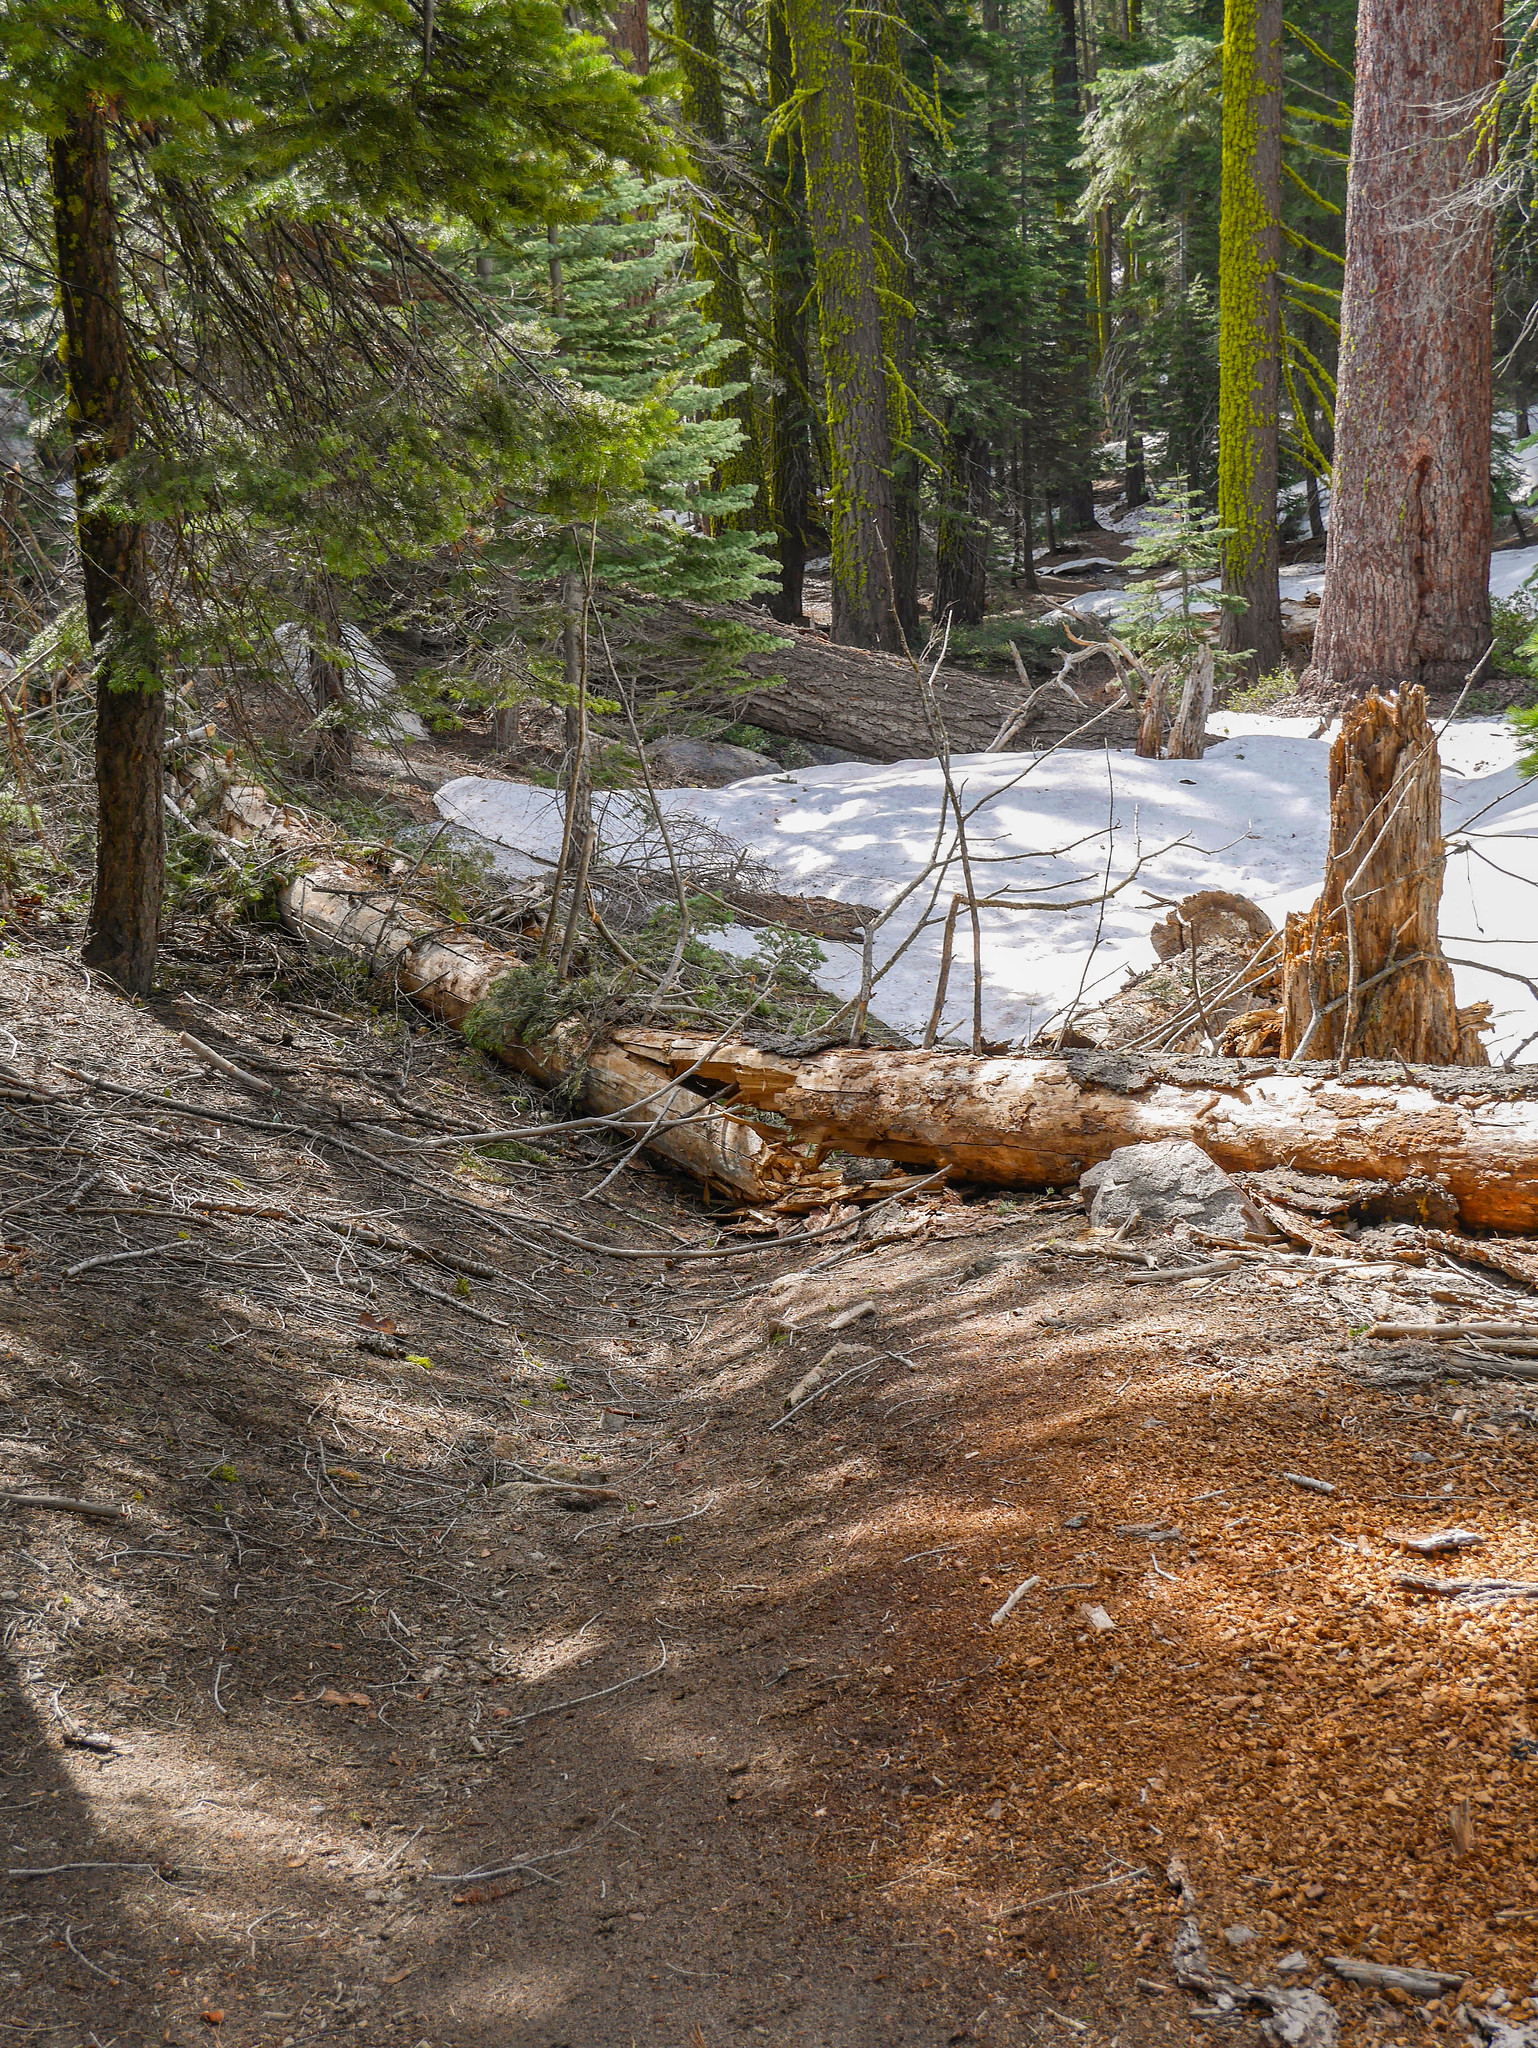 After Dewey Point, the trail condition detioriated significantly